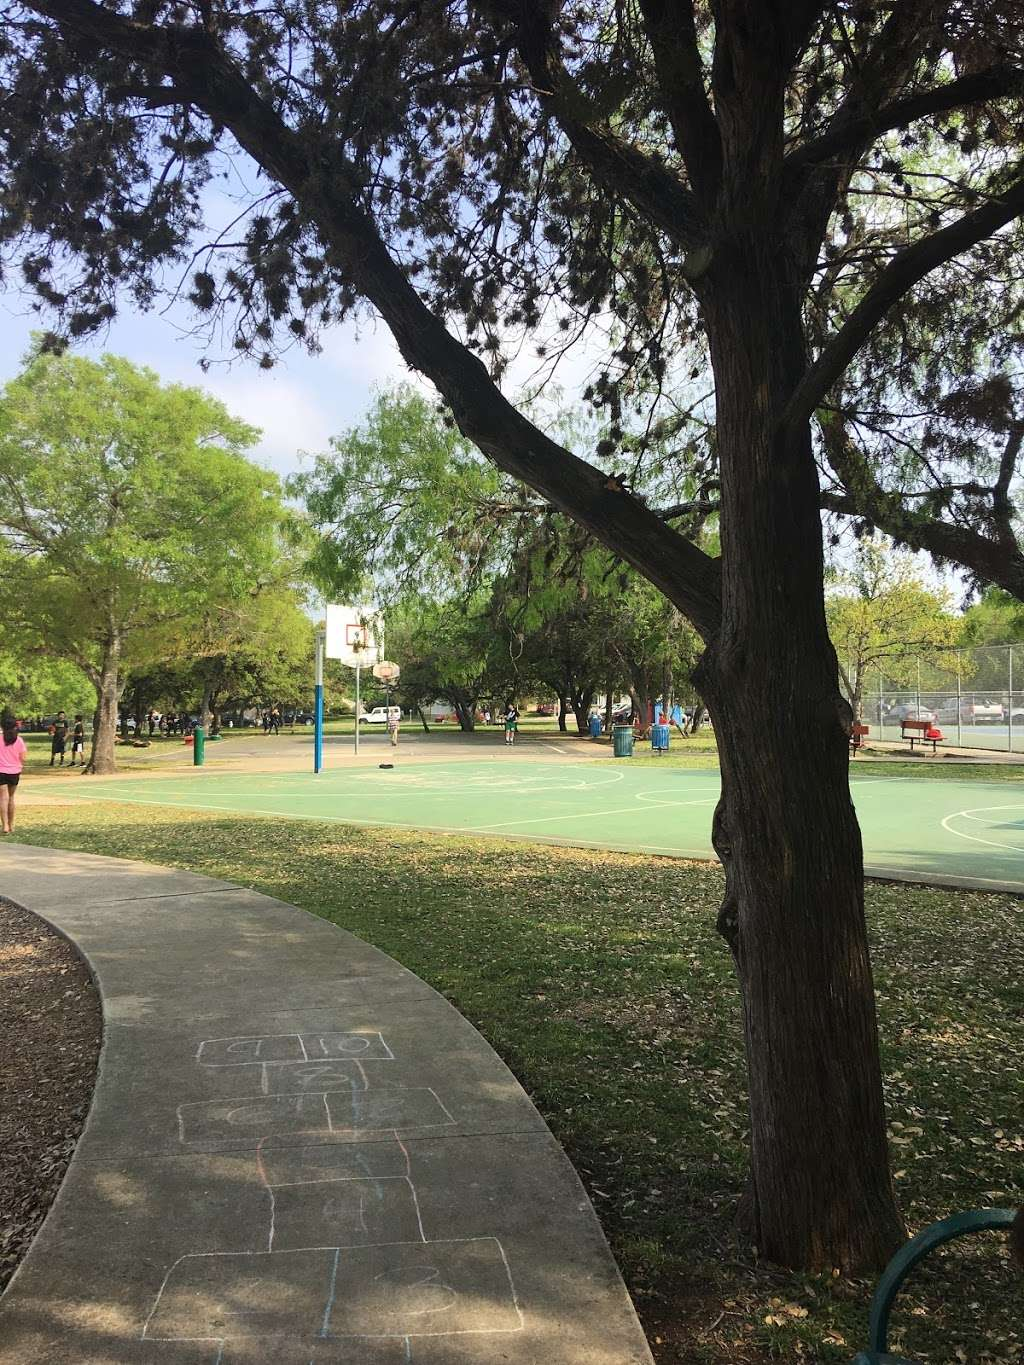 Blossom Park - park  | Photo 1 of 10 | Address: 15015 Heimer Rd, San Antonio, TX 78232, USA | Phone: (210) 207-7275